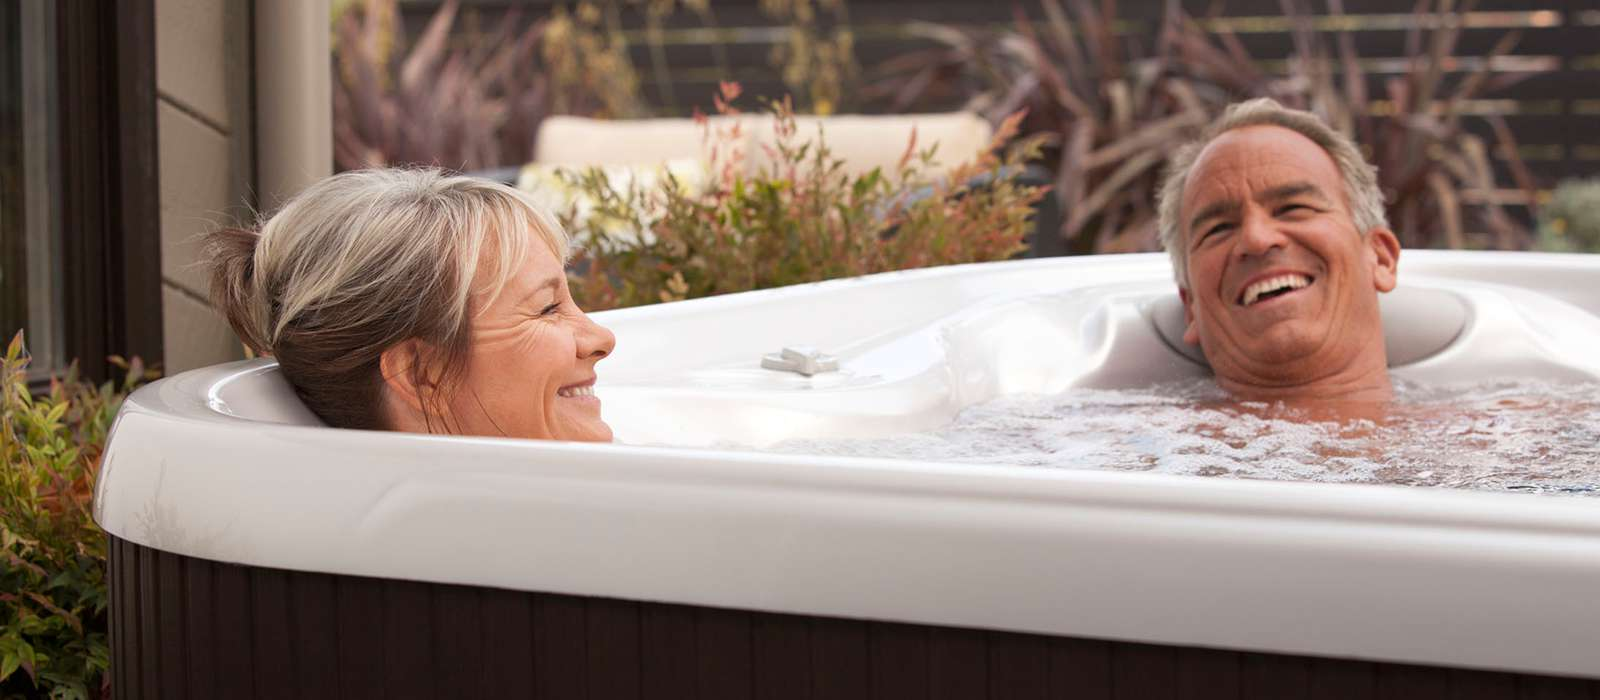 Hot Spring-Hot Spot-2013-TX-Lifestyle-Older Couple-01